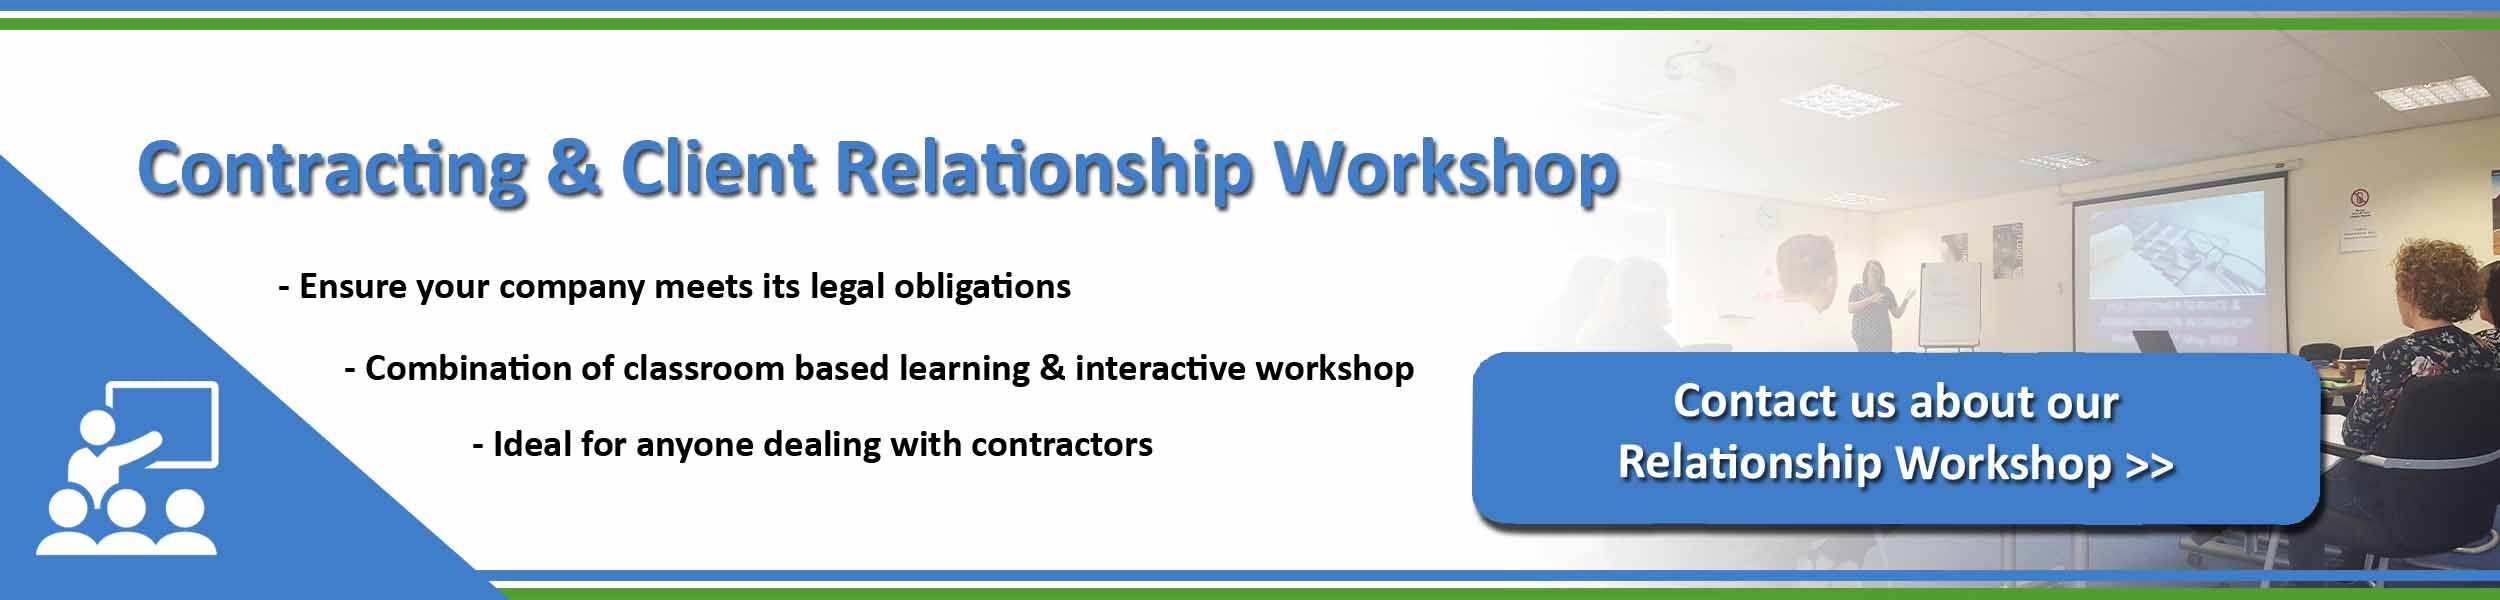 Contracting and Client Relationship Workshop